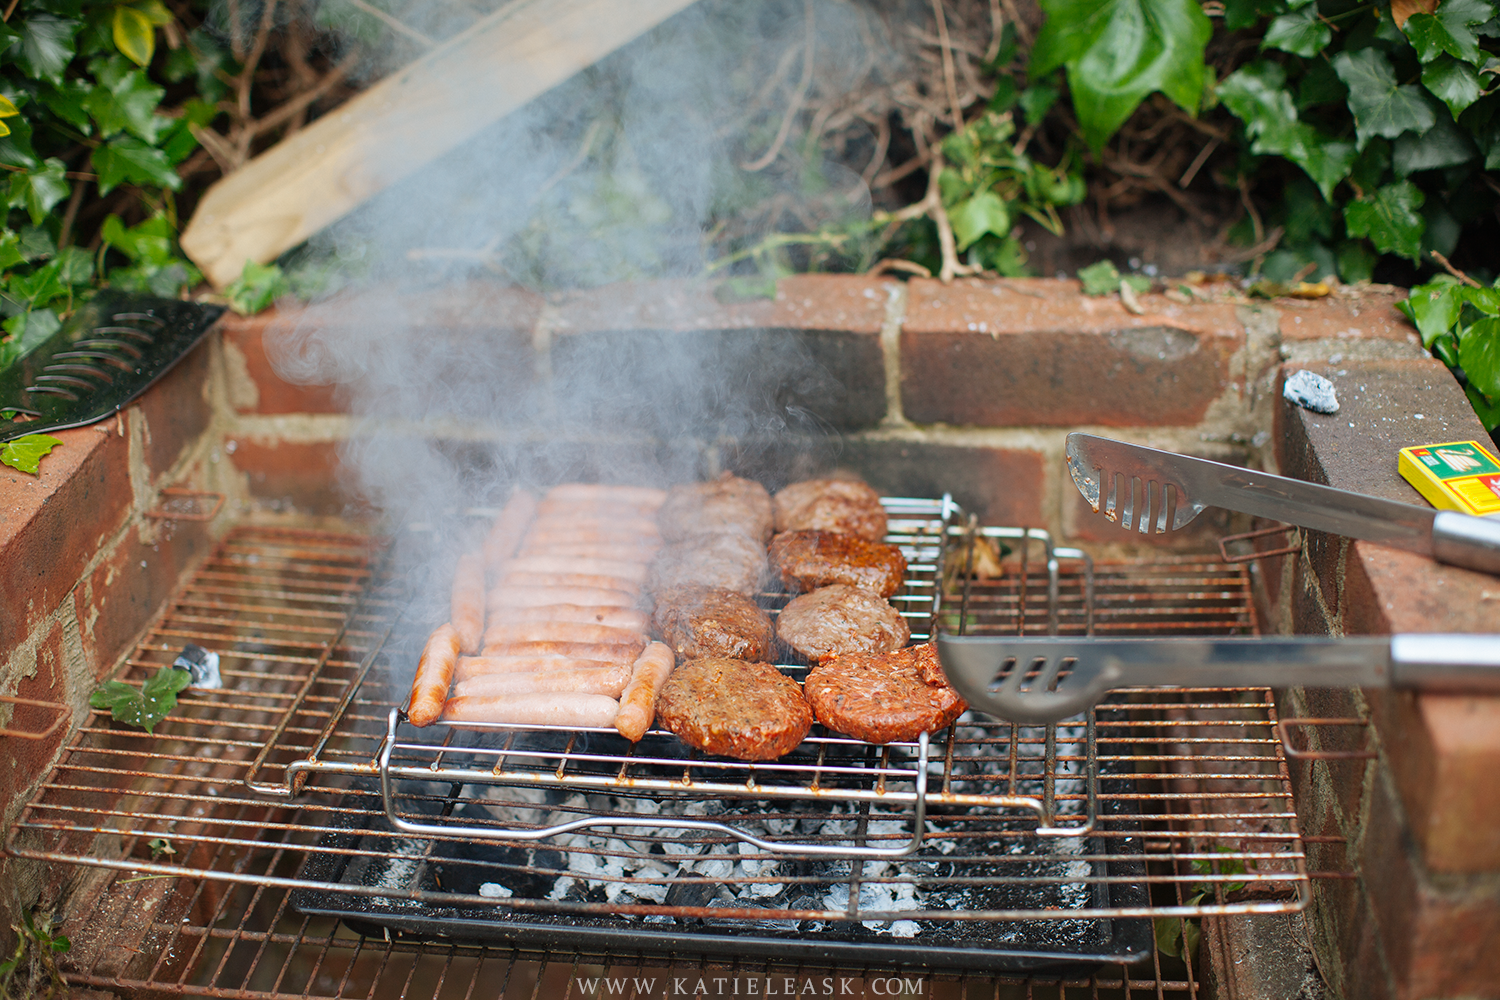 Katie-Leask-Photography-BBQ-002-S